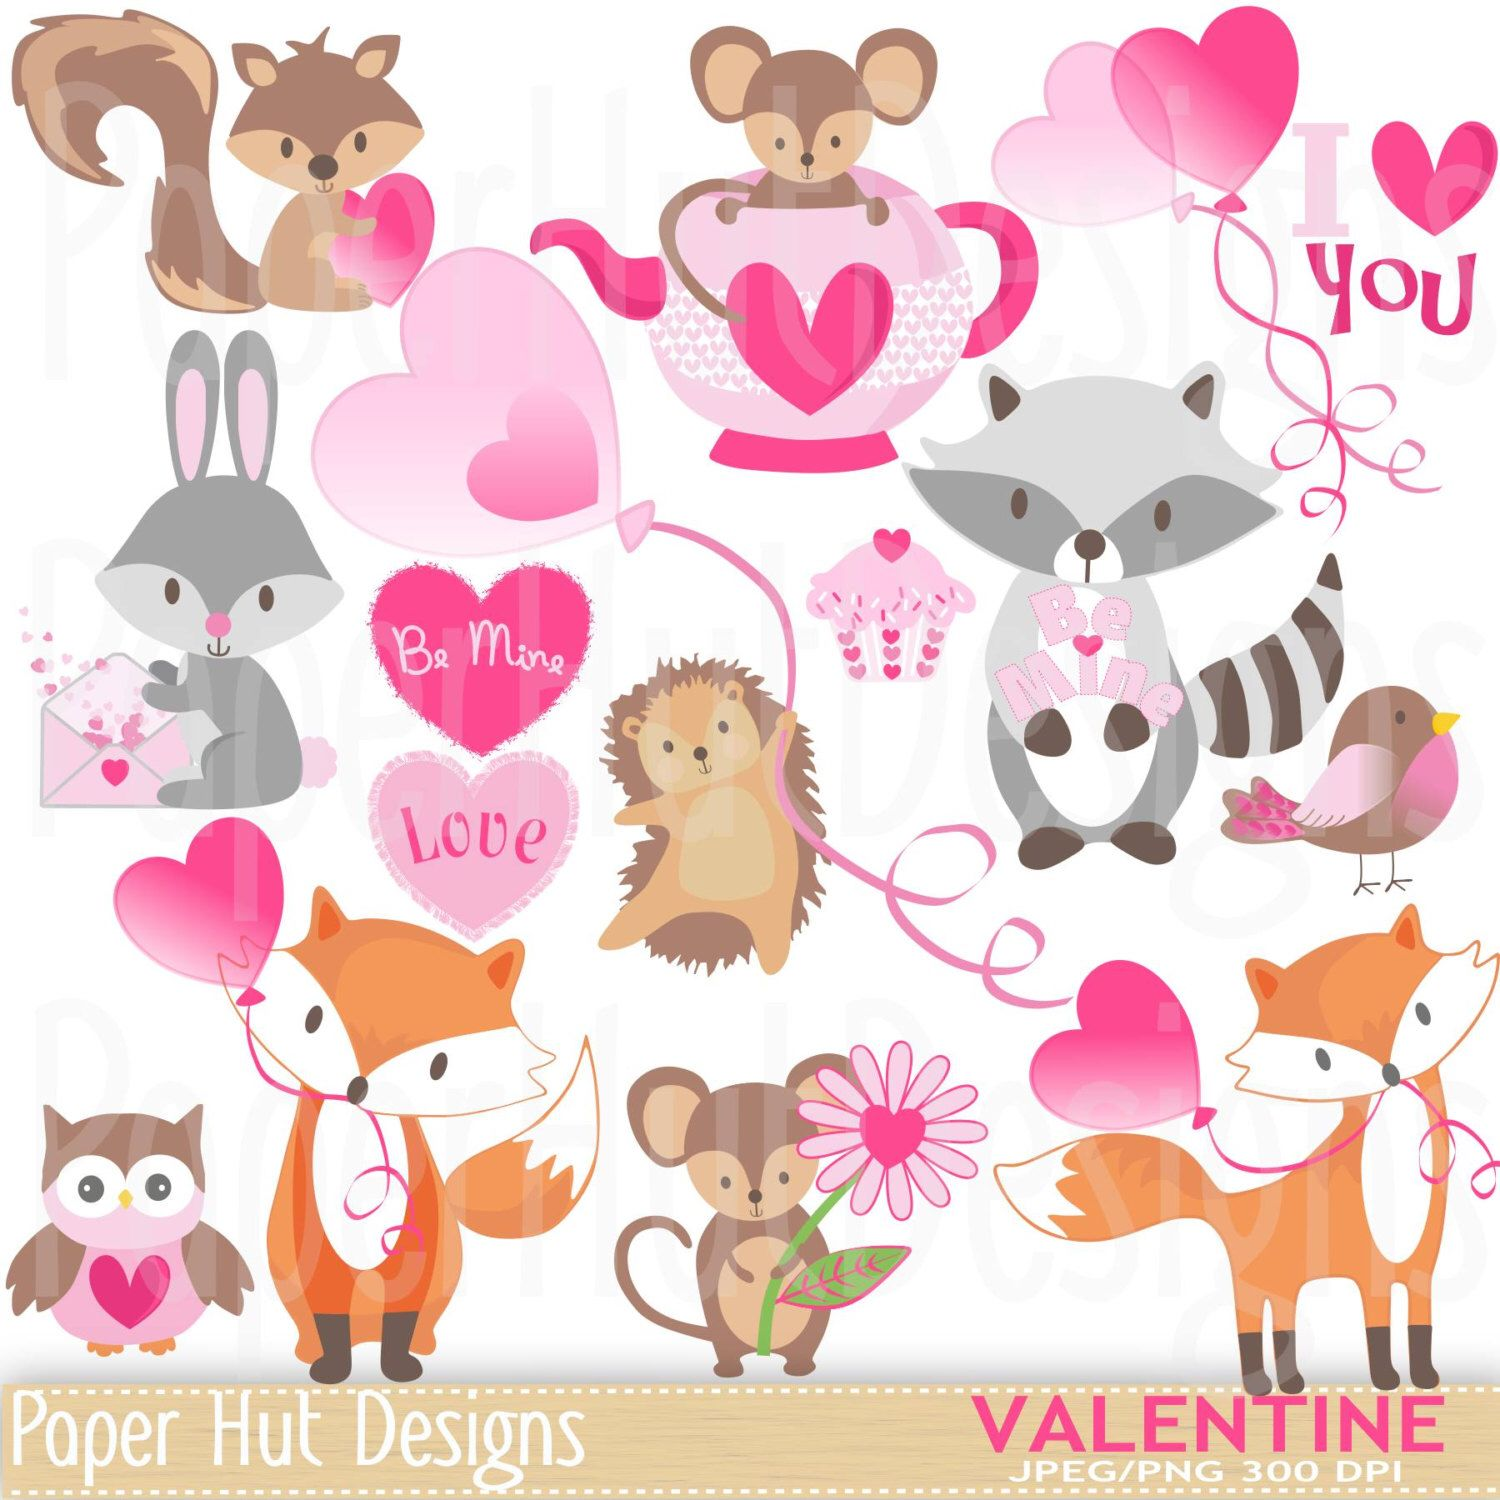 Valentines clipart with raccoon svg transparent stock Pin by fbaby love on Clip art | Clip art, Valentines art ... svg transparent stock